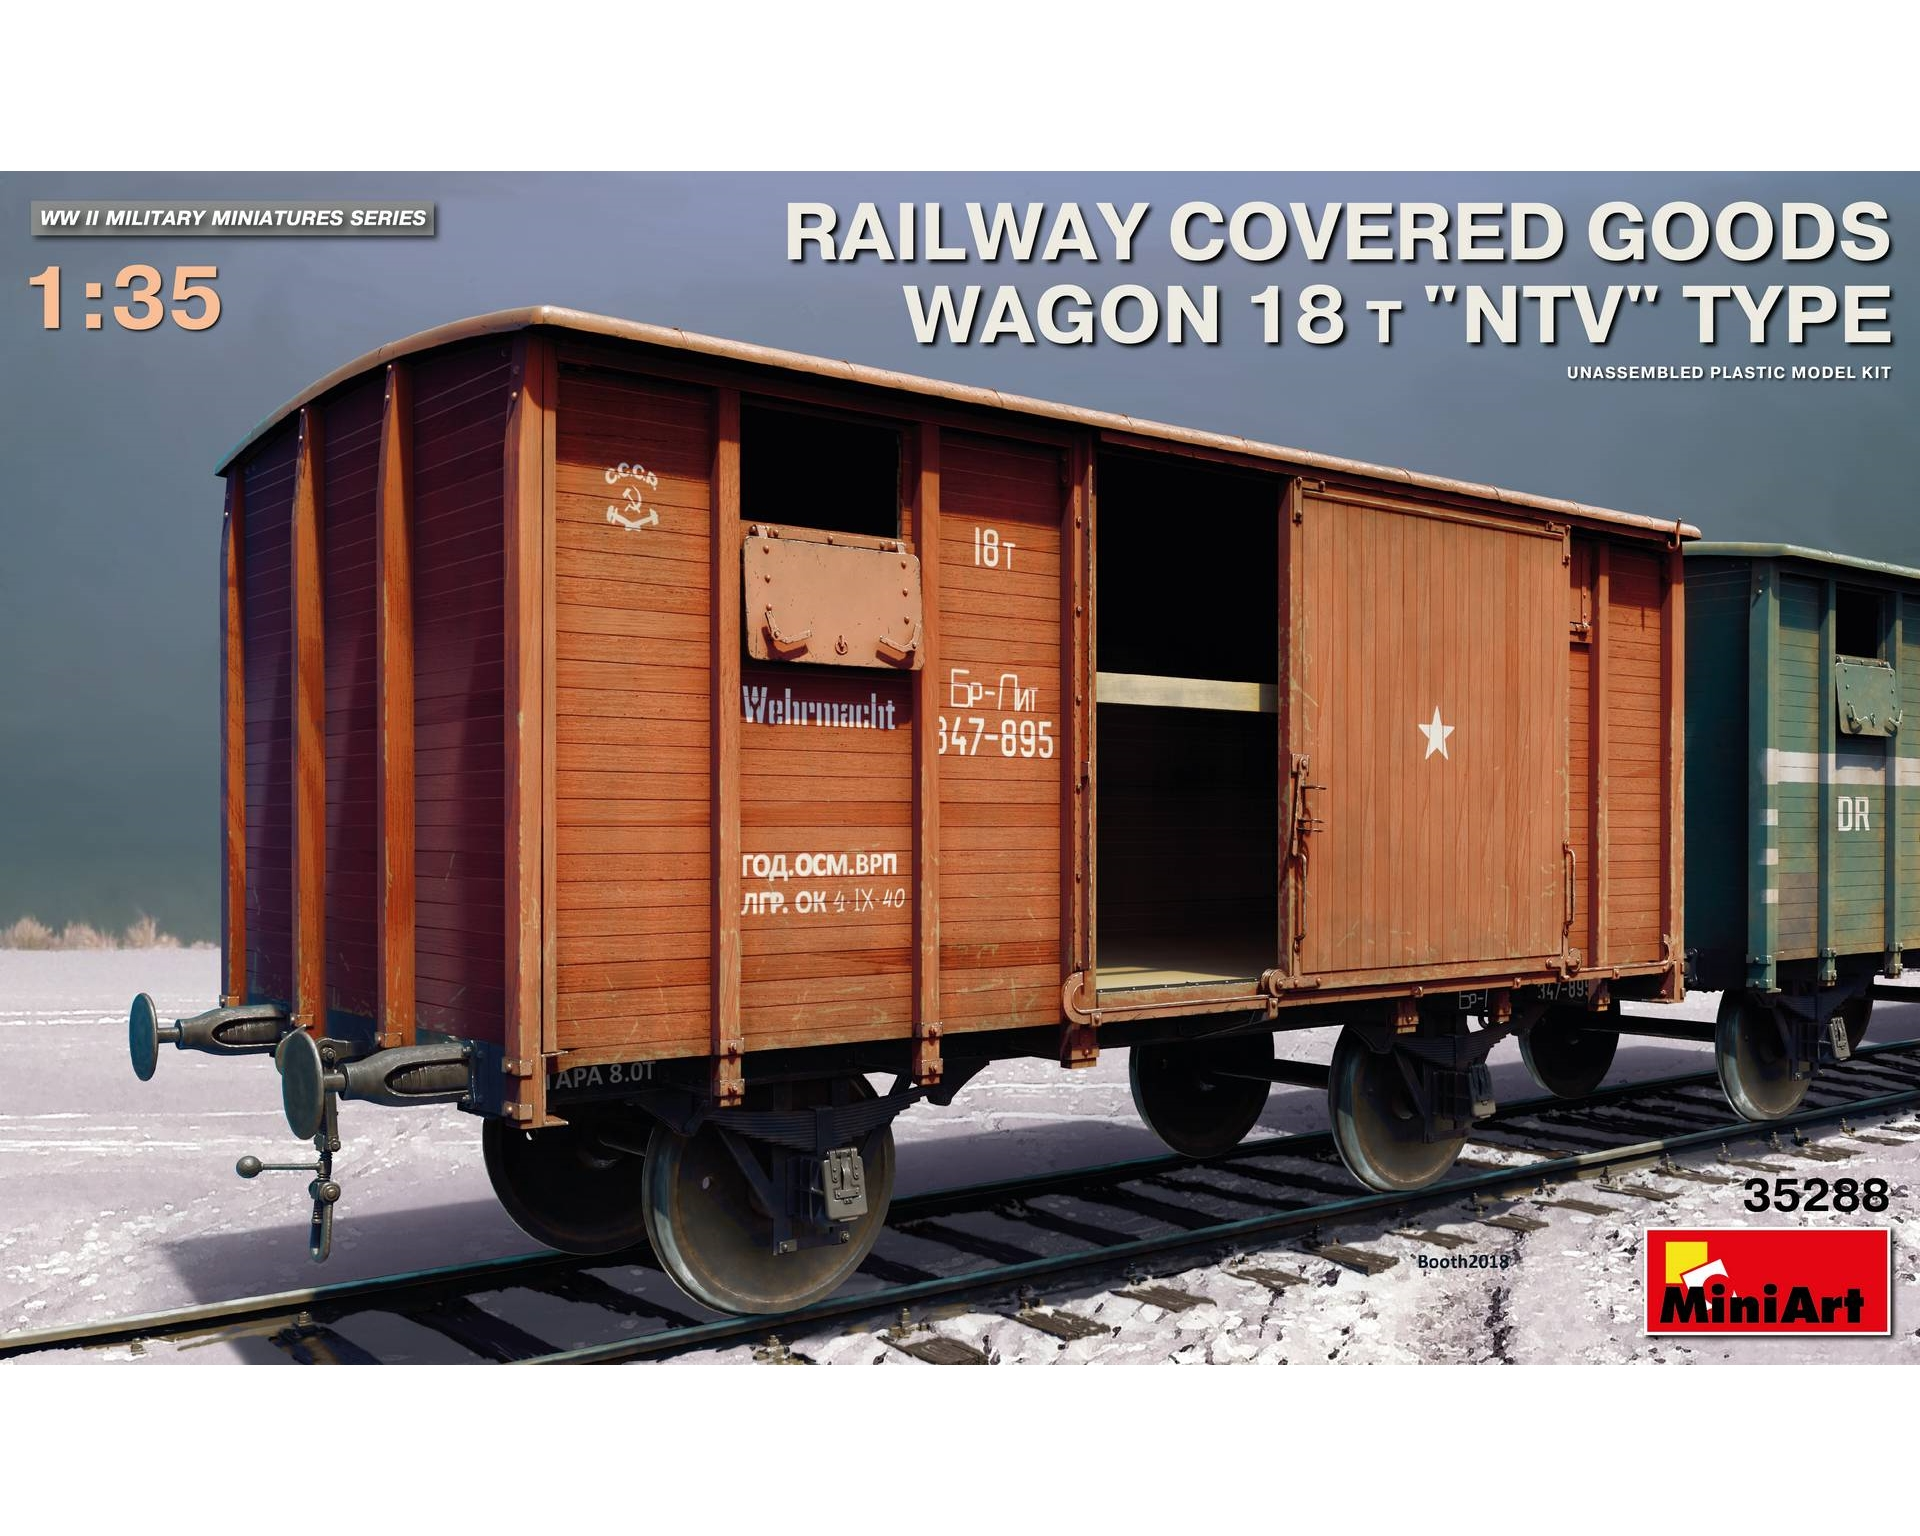 RAILWAY COVERED GOODS WAGON 18 T NTV